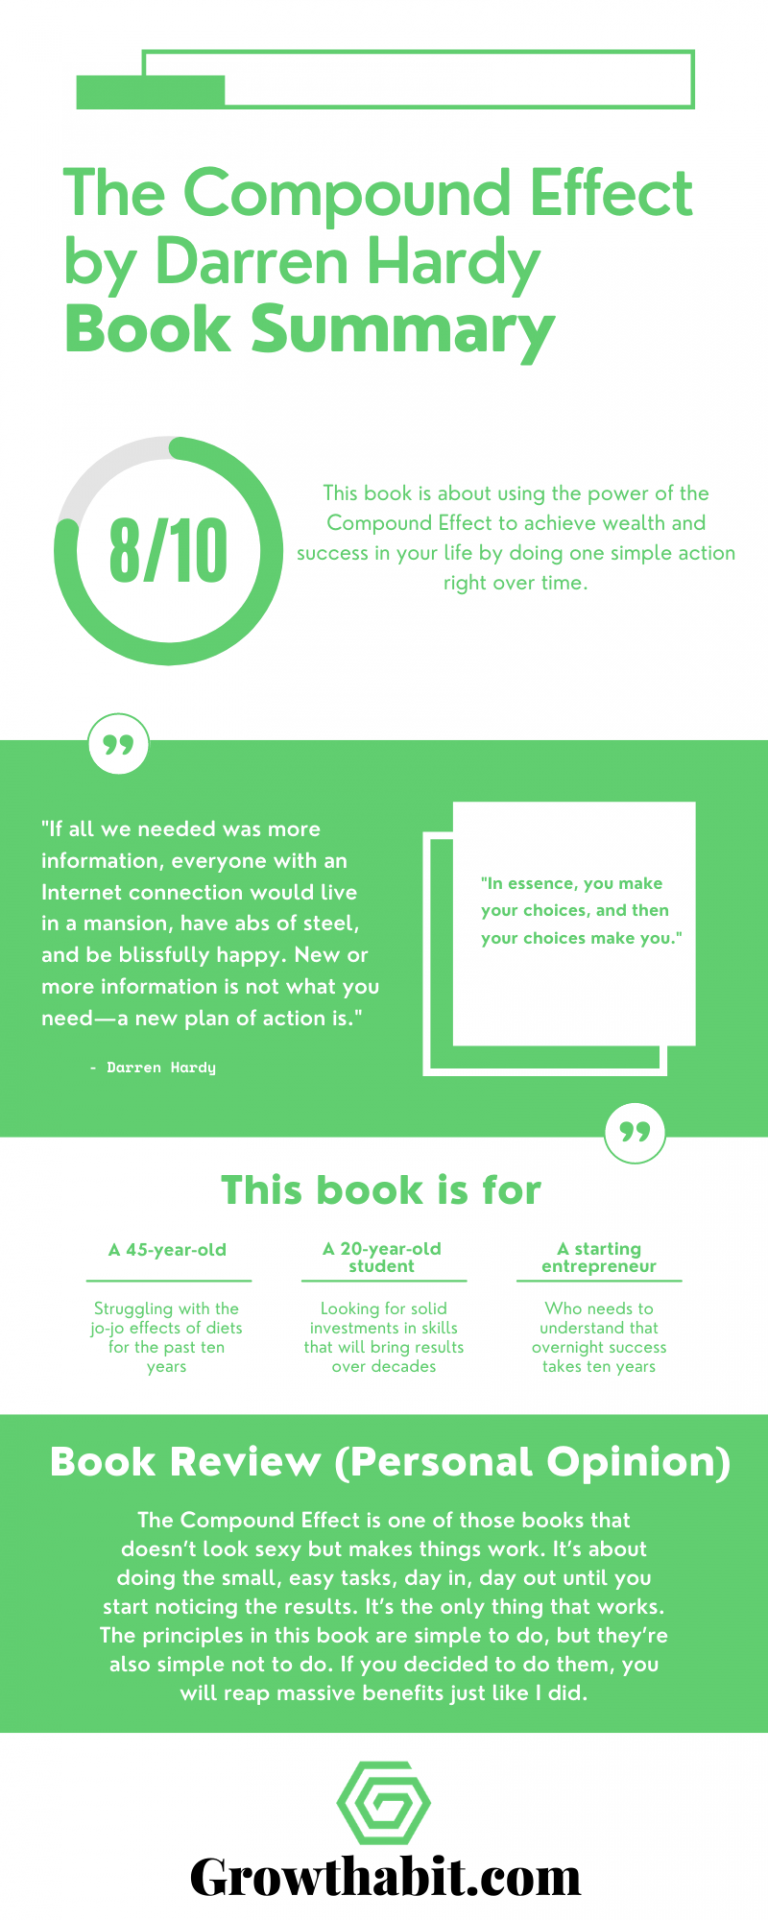 The Compound Effect - Darren Hardy - Book Summary Infographic